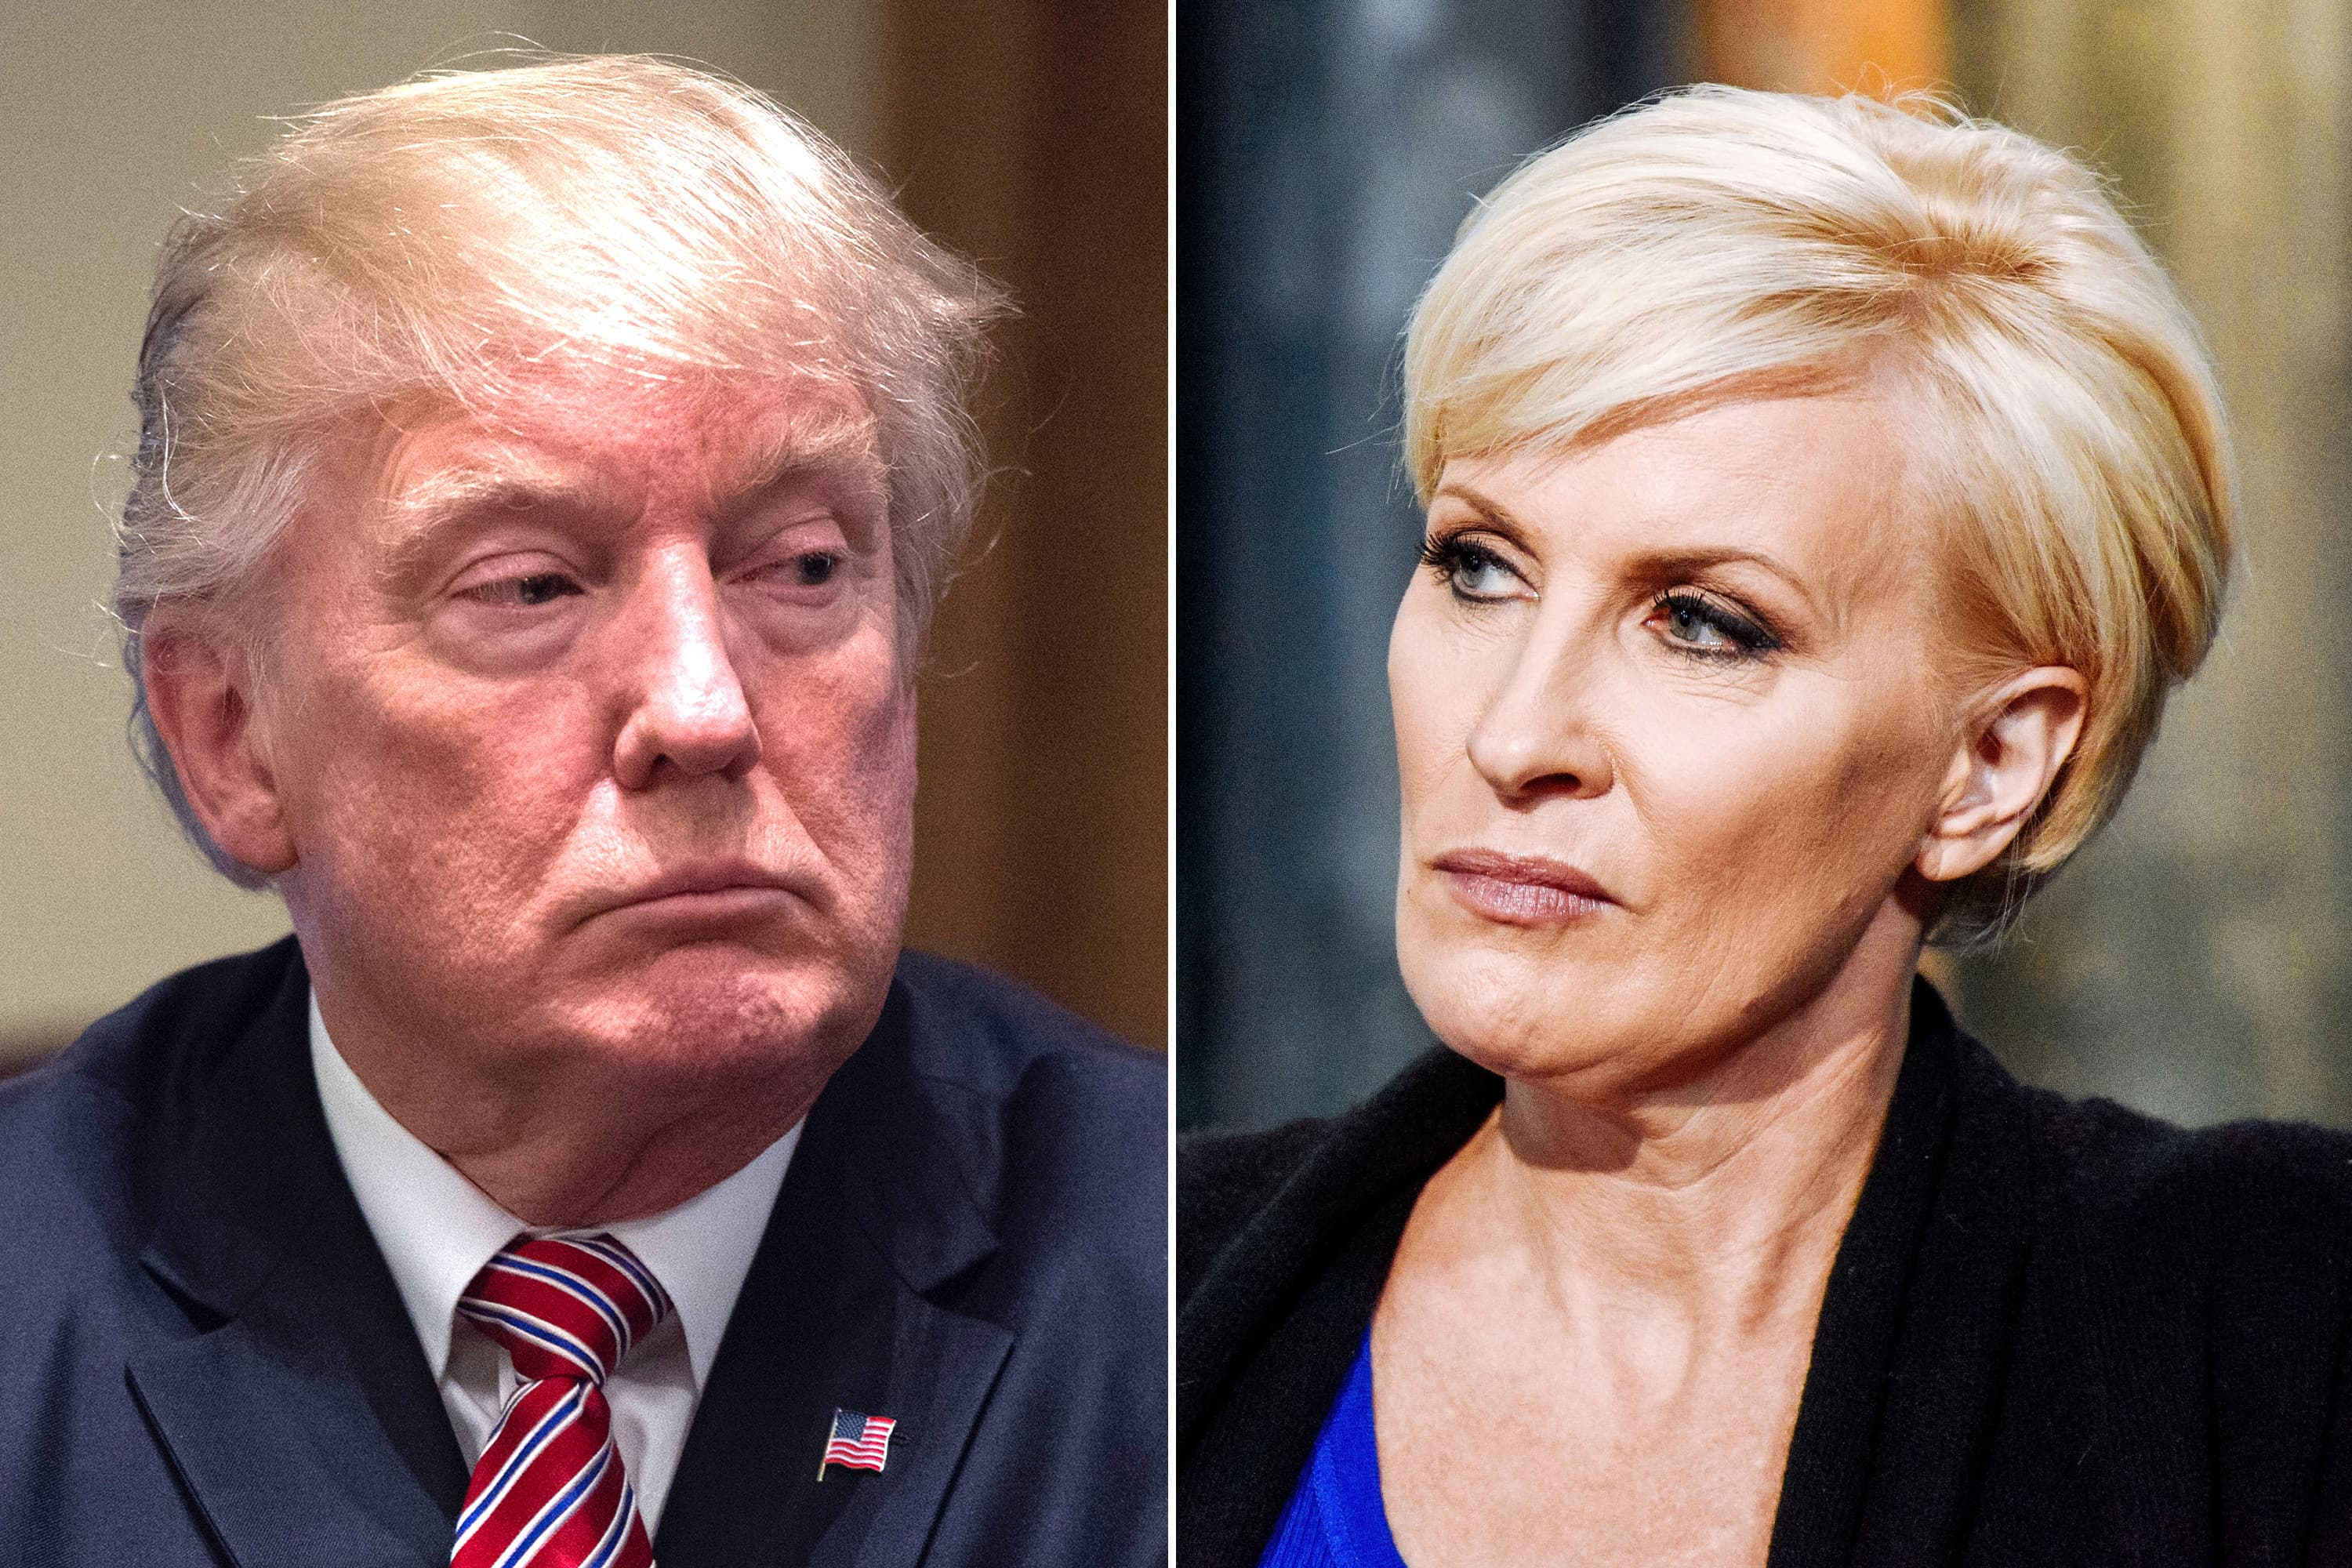 Mika Brzezinski Plastic Surgery Before After 1